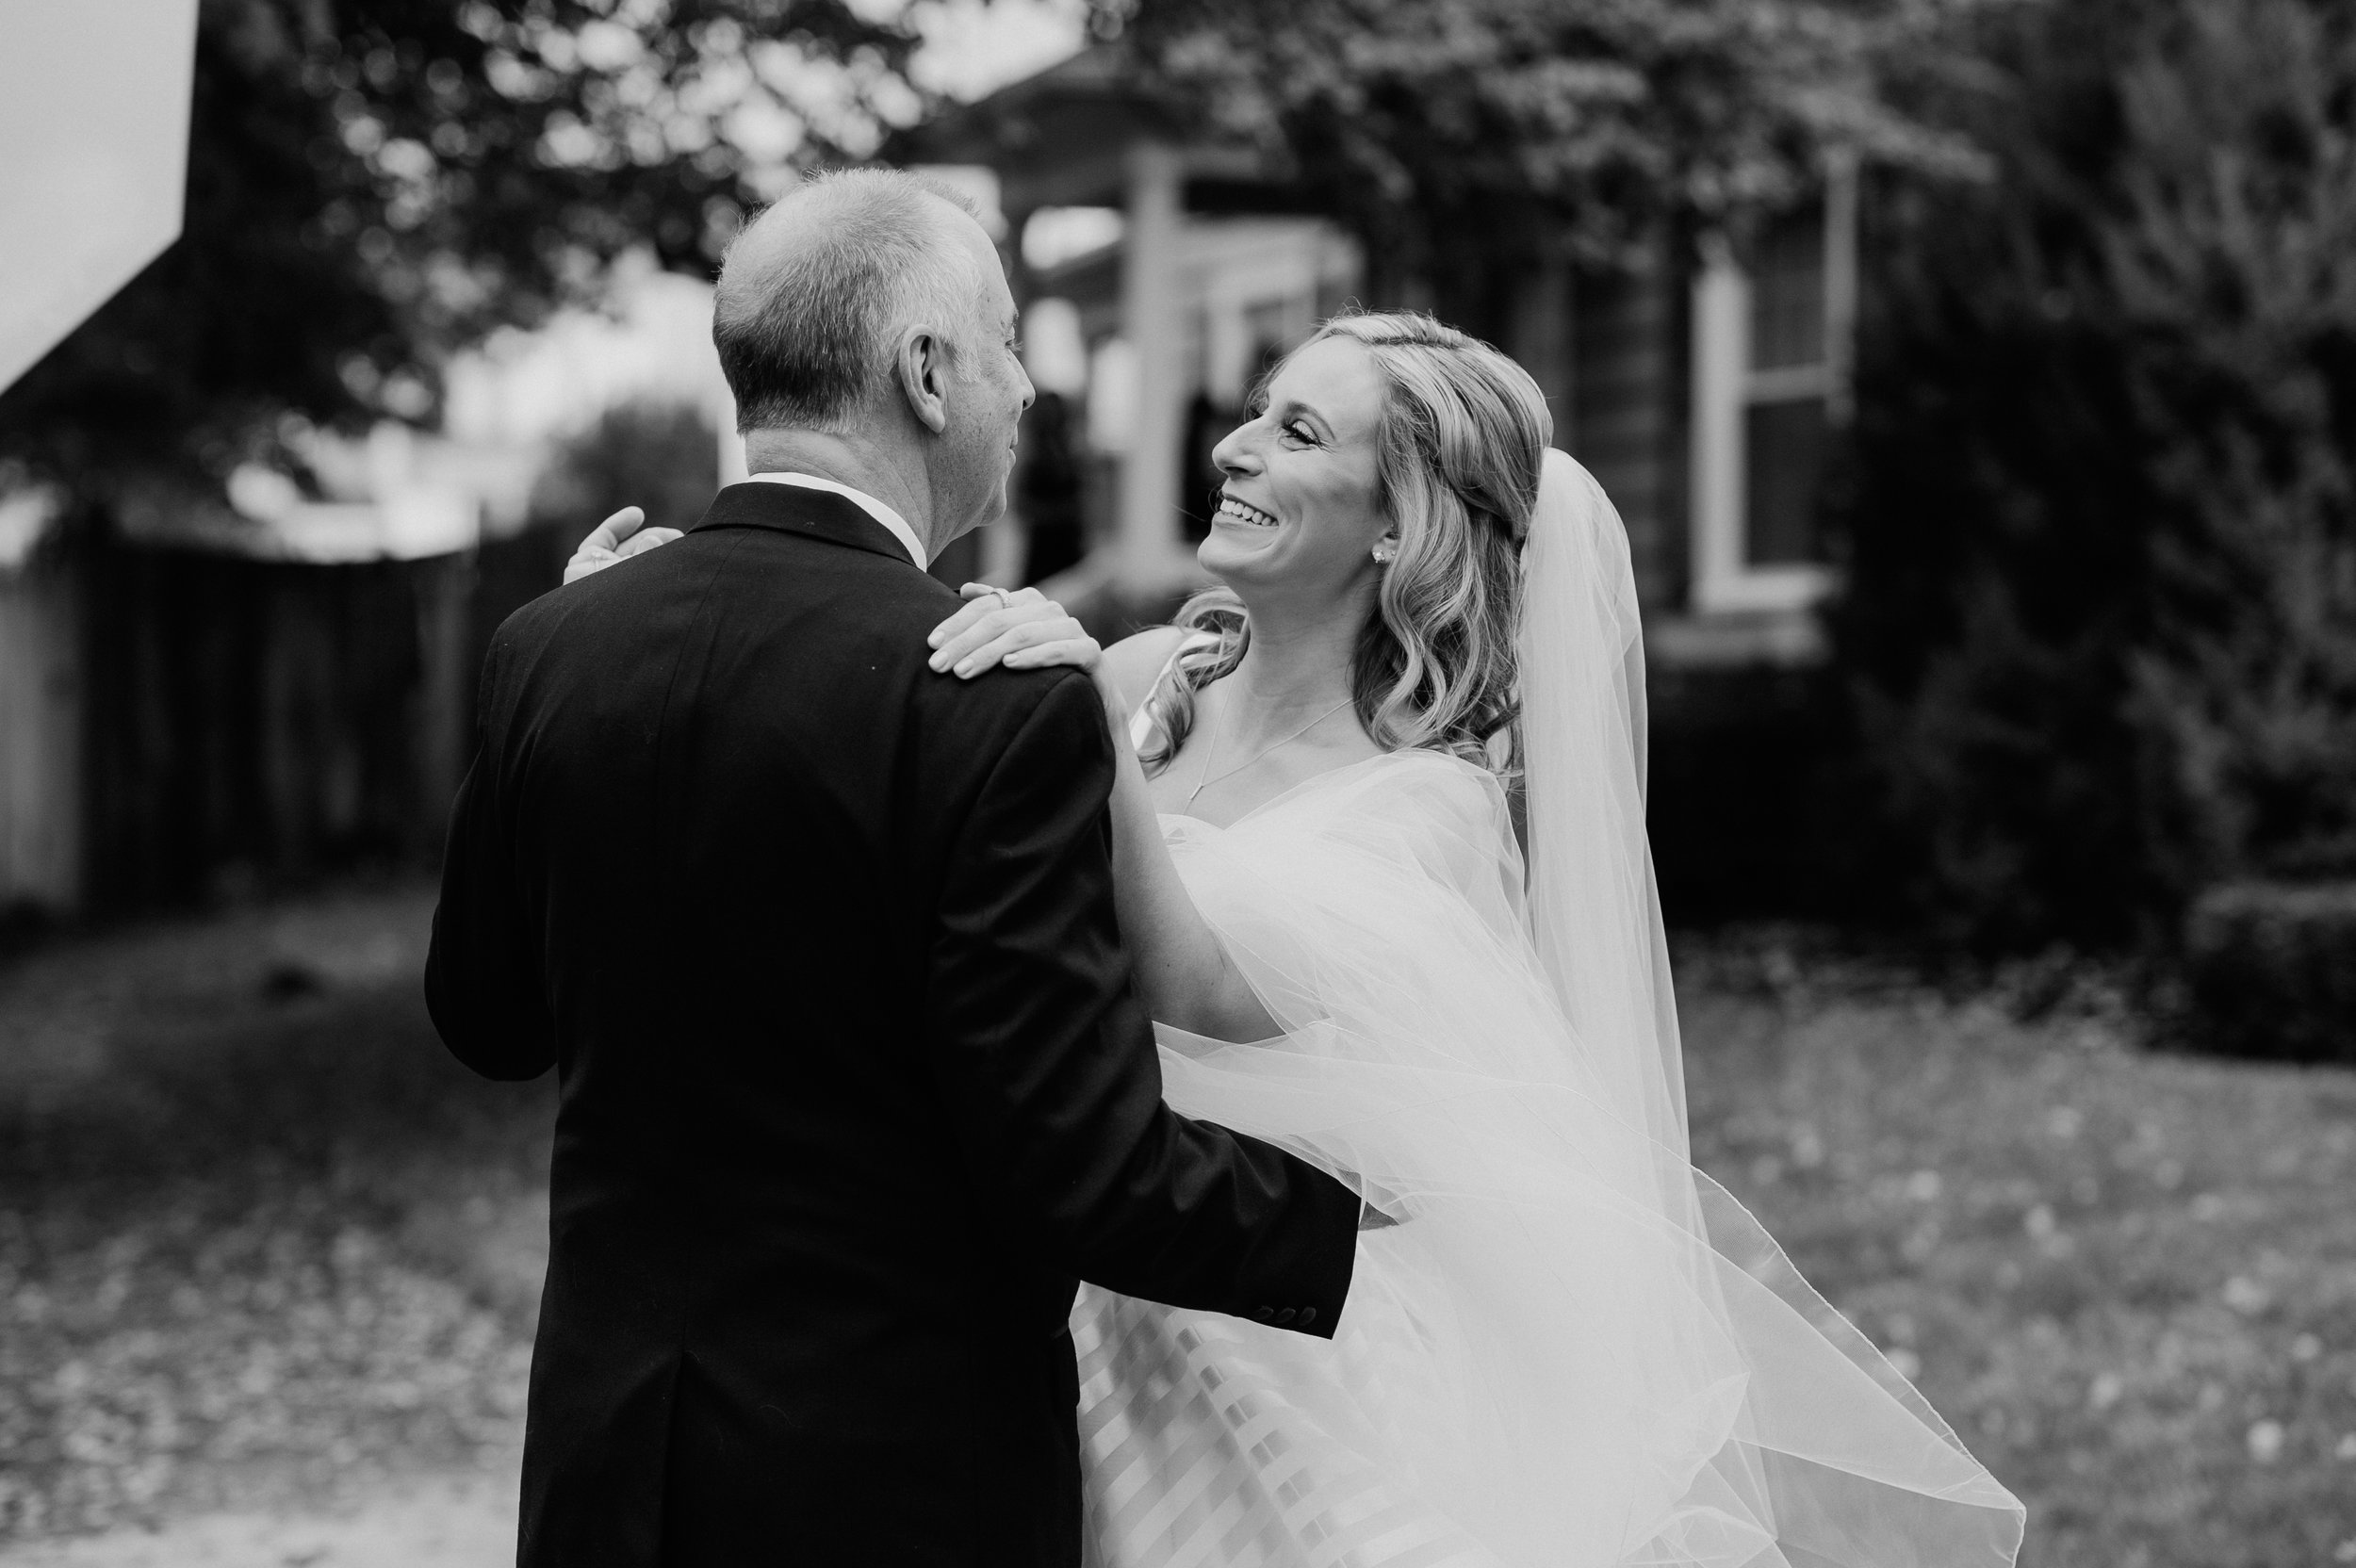 Bride and her father share a first look for black, white, and gold wedding in Buffalo, NY planned by Exhale Events. Find more wedding inspiration at exhale-events.com!